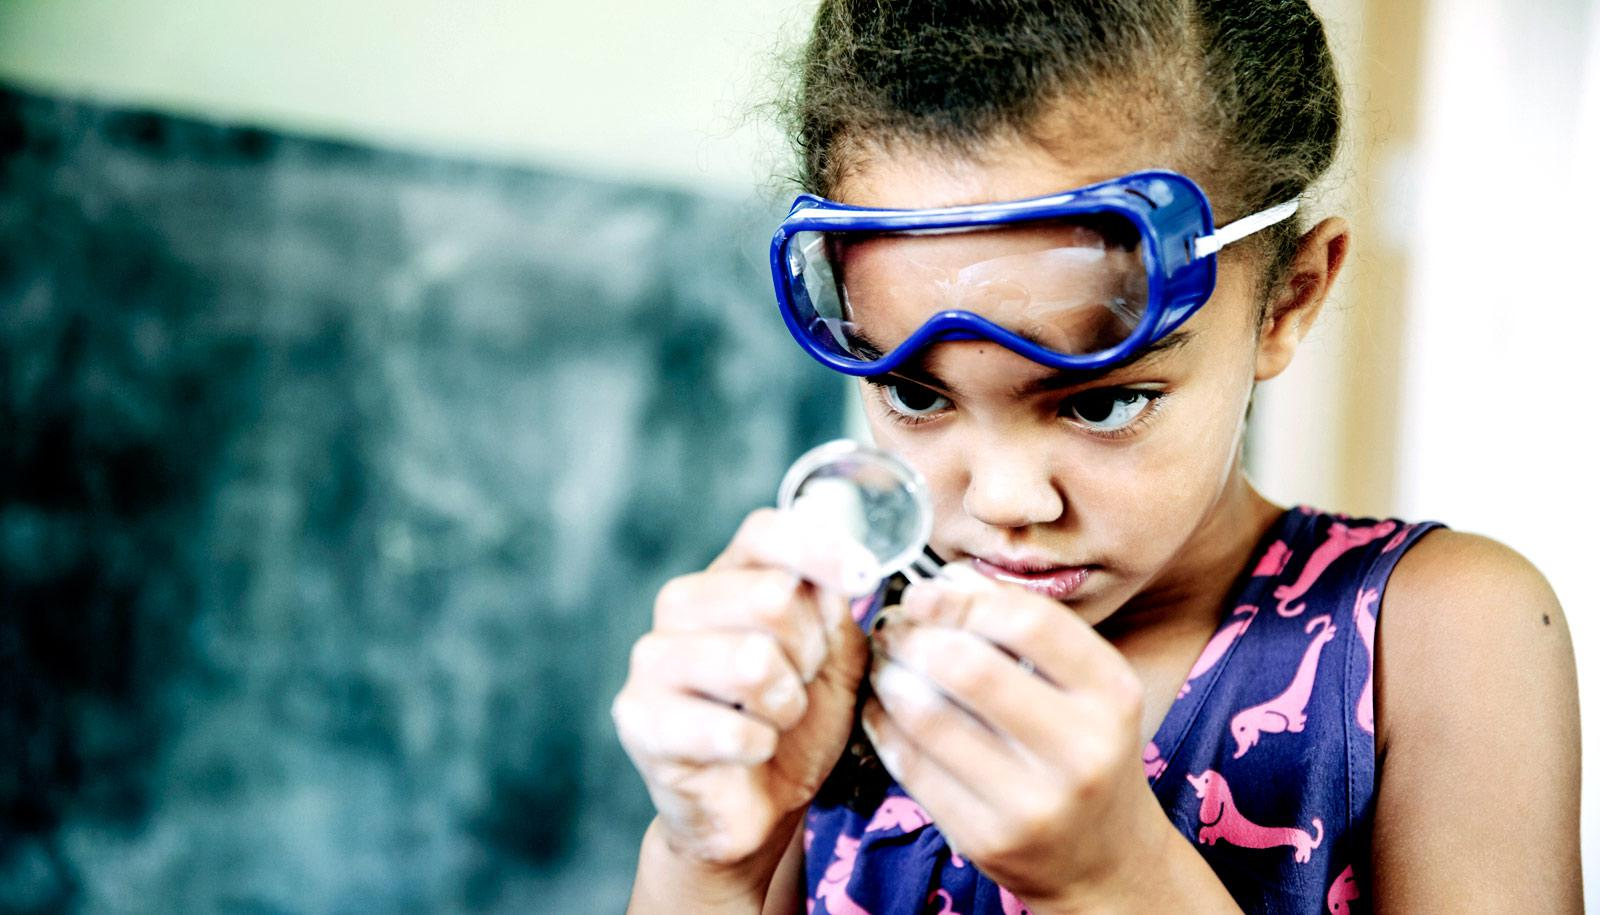 girl in goggles uses magnifying glass